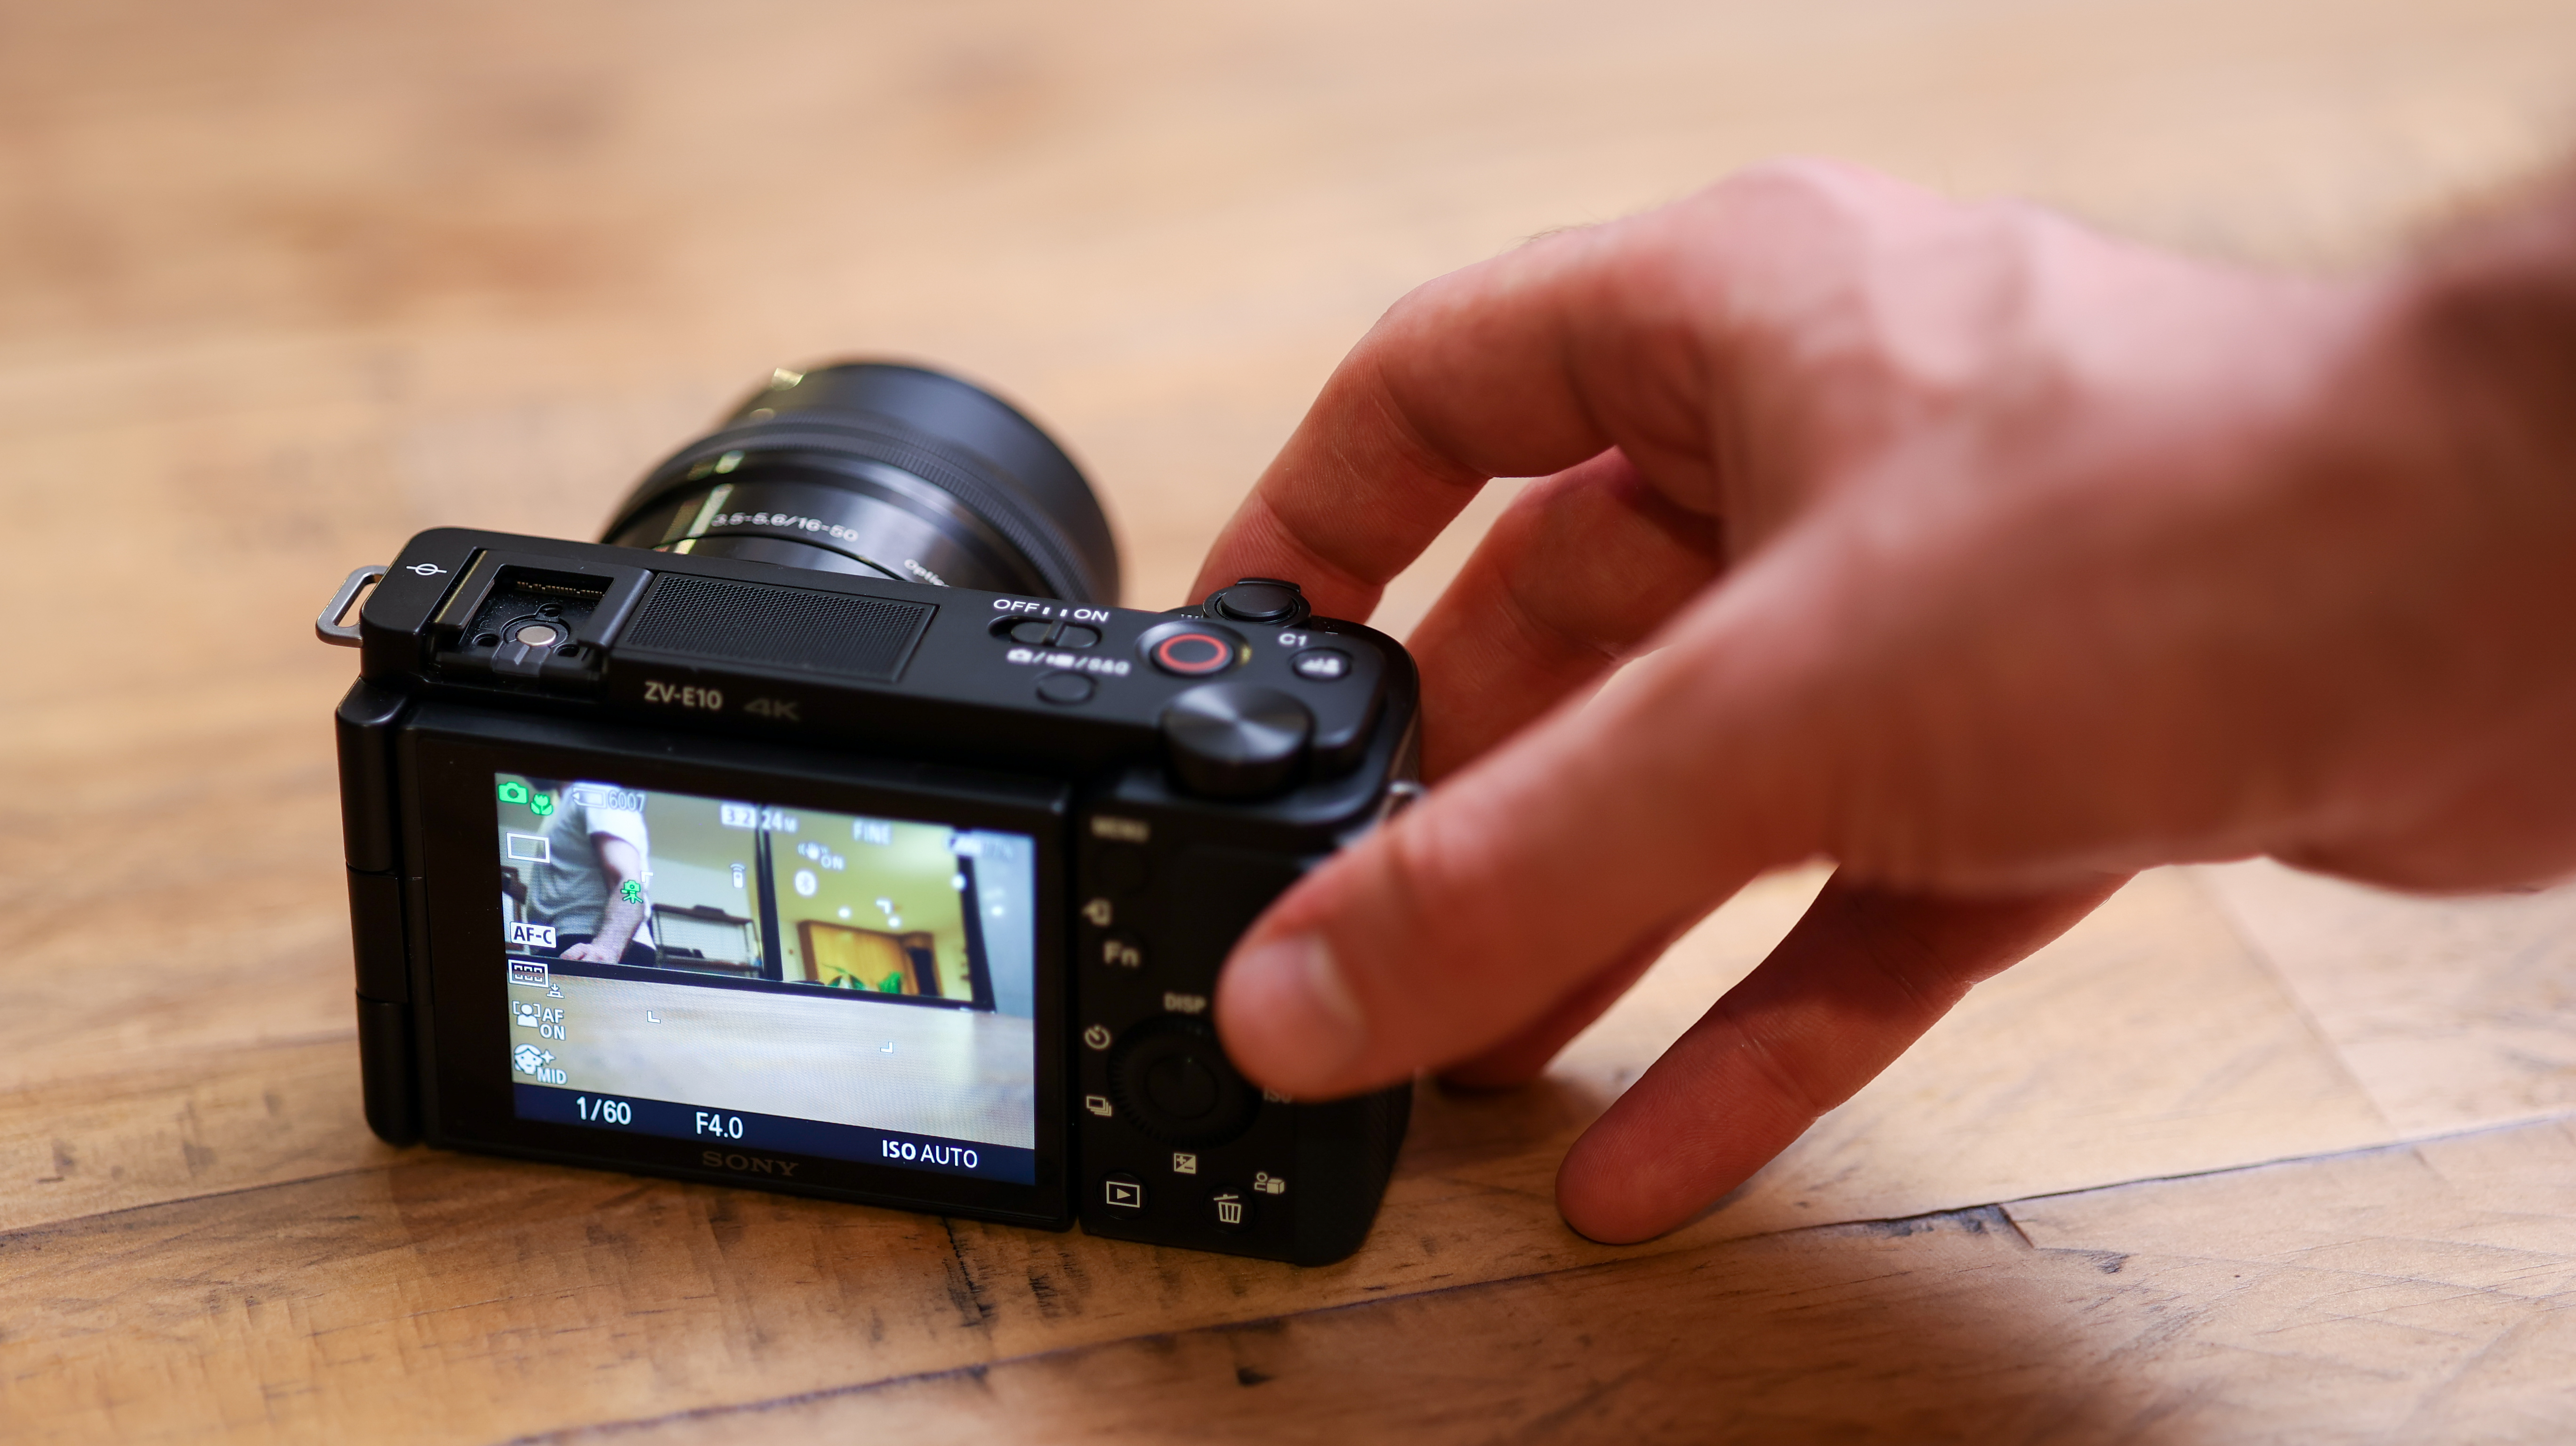 A hand operating the Sony ZV-E10 while it sits on a wooden table